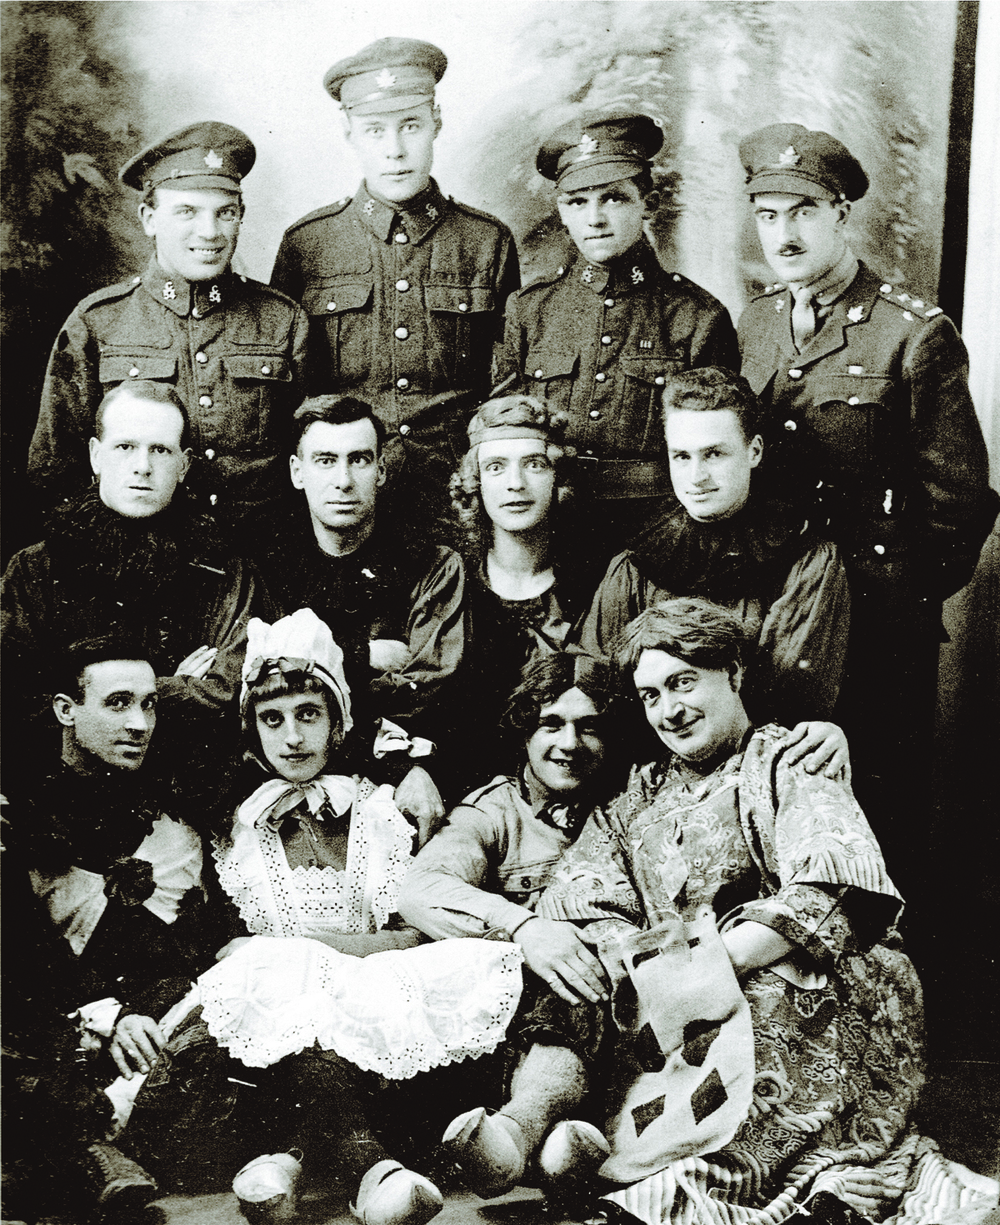 During the Great War, concert parties were encouraged by the commanding officers, as they provided a harmless outlet for soldiers in dealing with the hardships of life on the front line. These men of the 54th Battalion entertained their comrades and other units. (Canadian War Museum, 19790308-017)